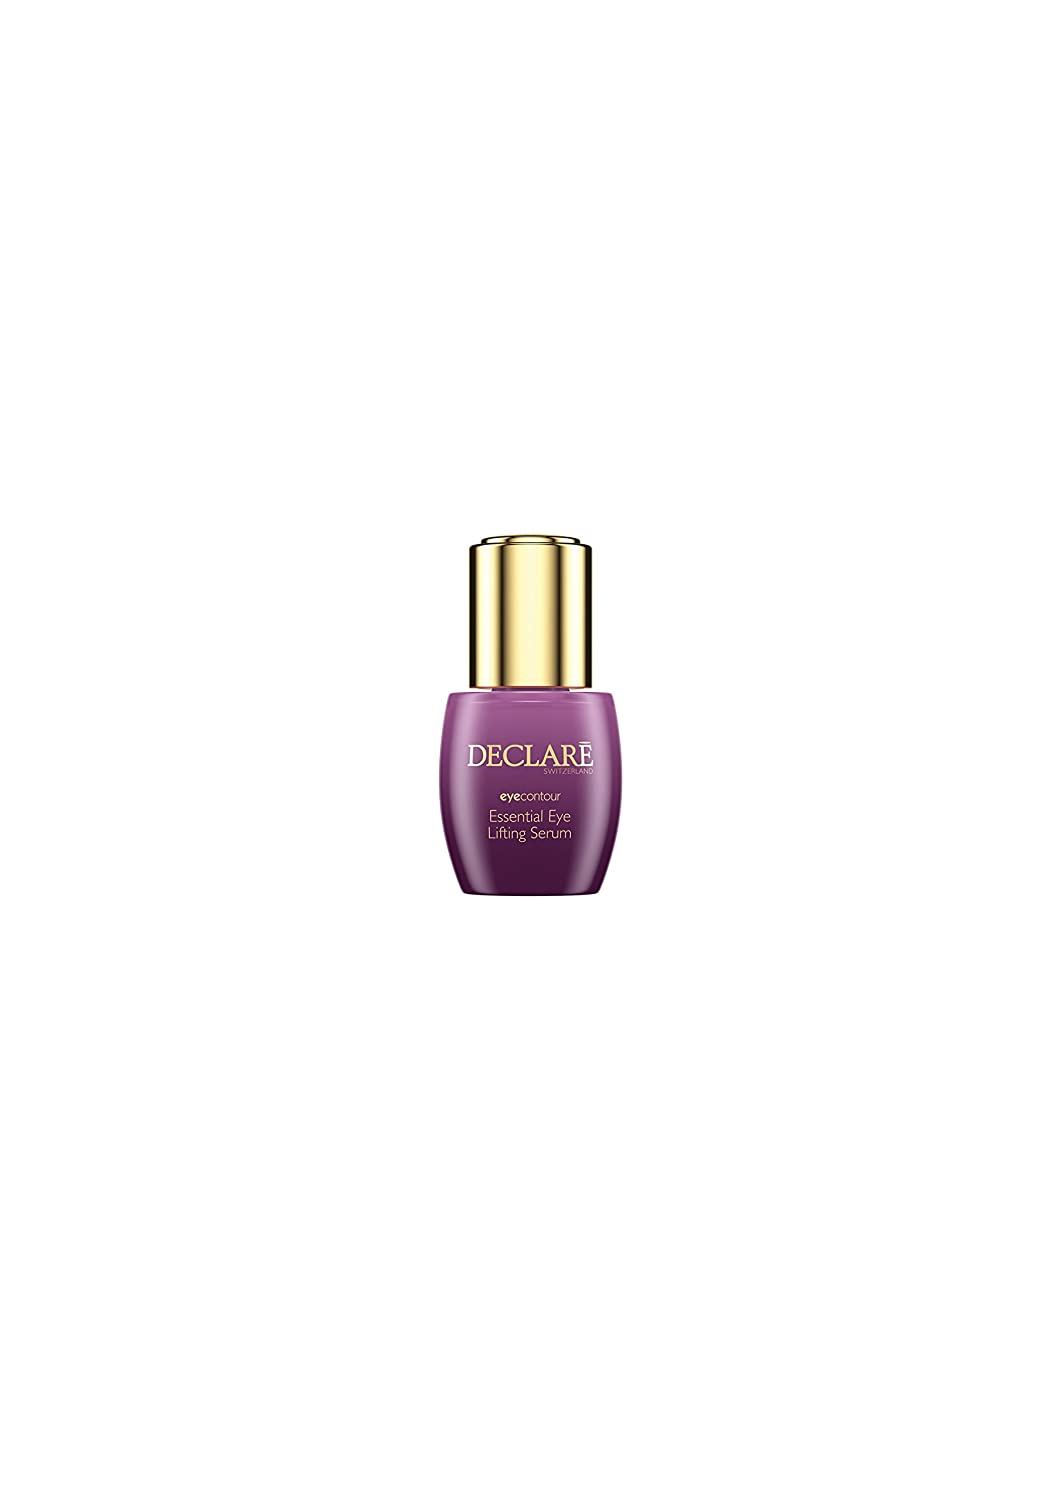 Declare Eye-Contour femme/women, Essential Eye Lift Serum, 1er Pack (1 x 15 ml) 9007867007471